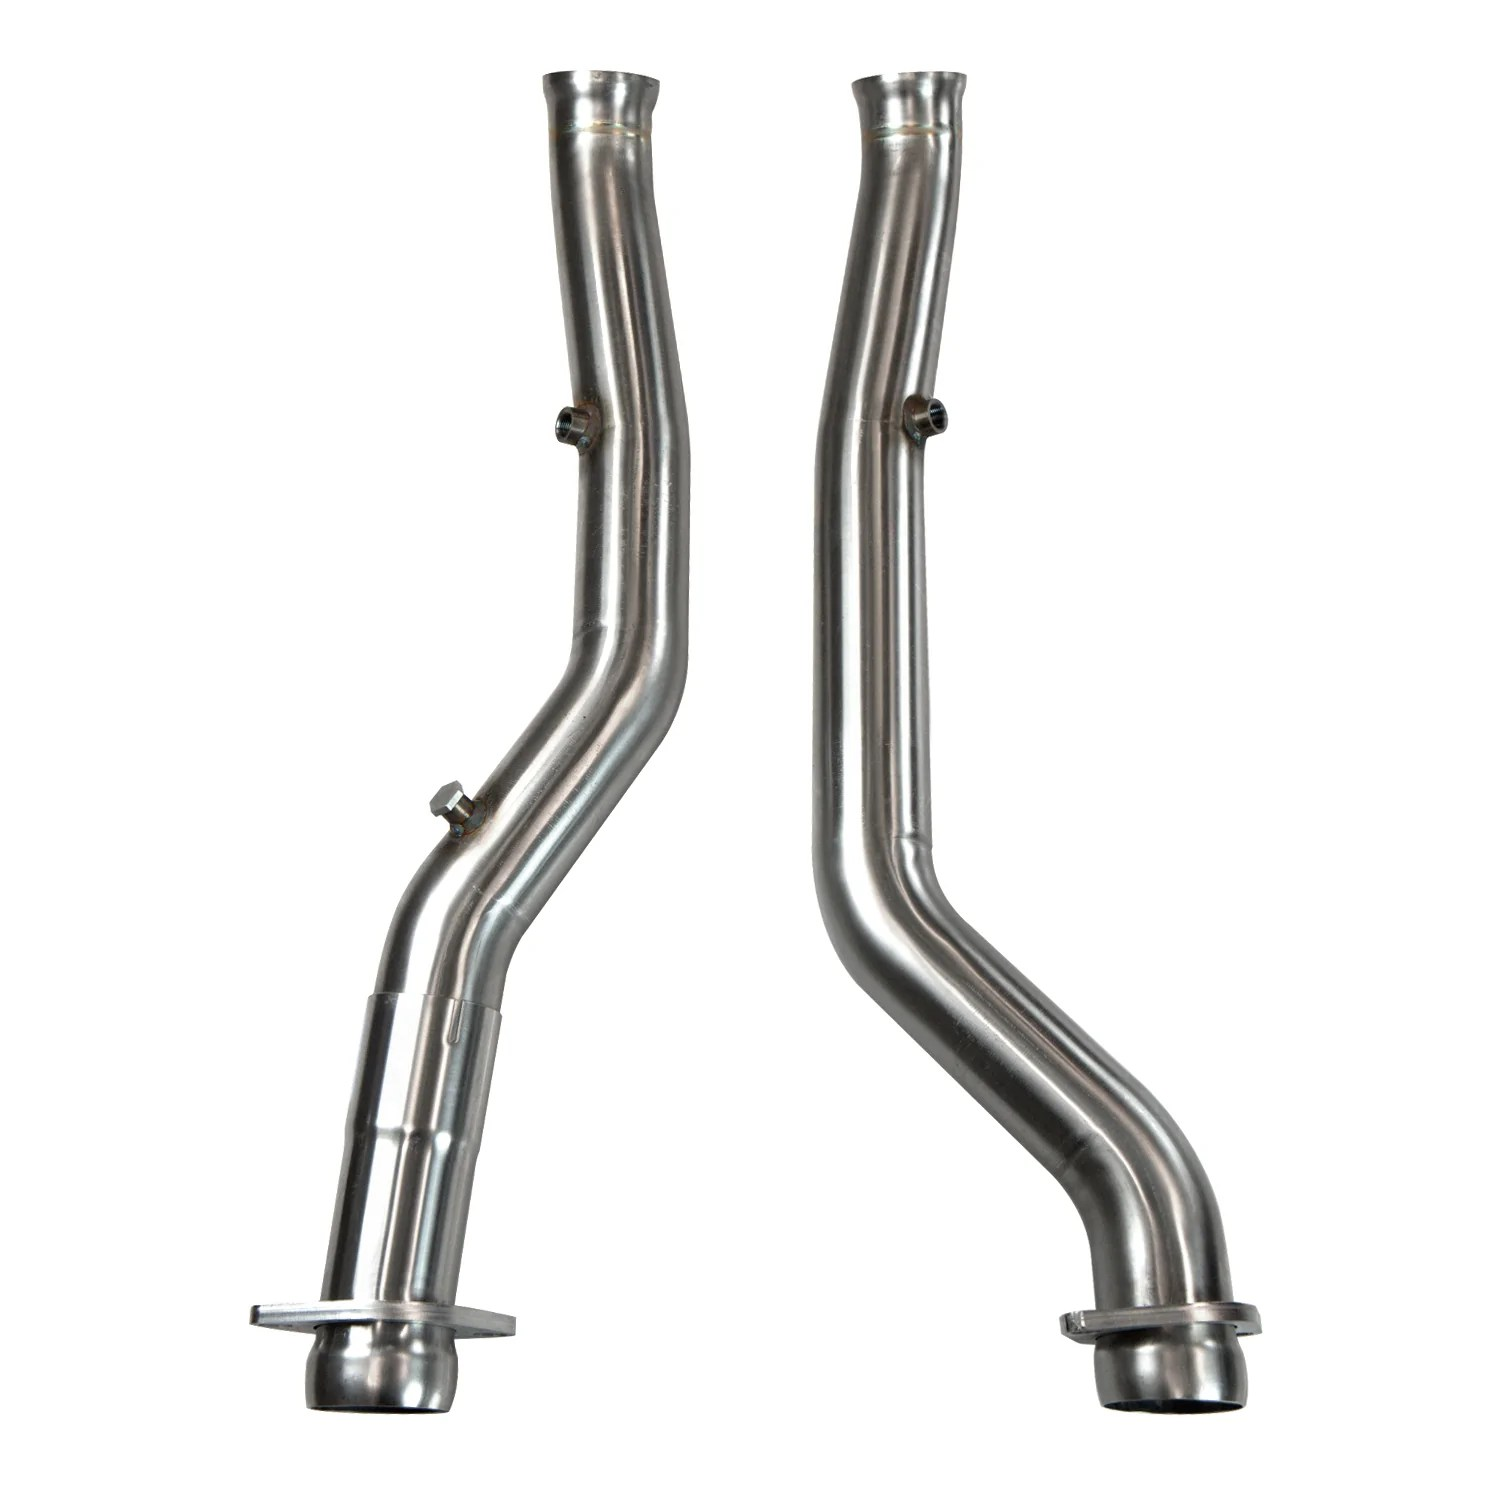 hight resolution of 2011 dodge durango 5 7l 2012 jeep grand cherokee wk2 5 7l 3 x oem non catted connection pipe